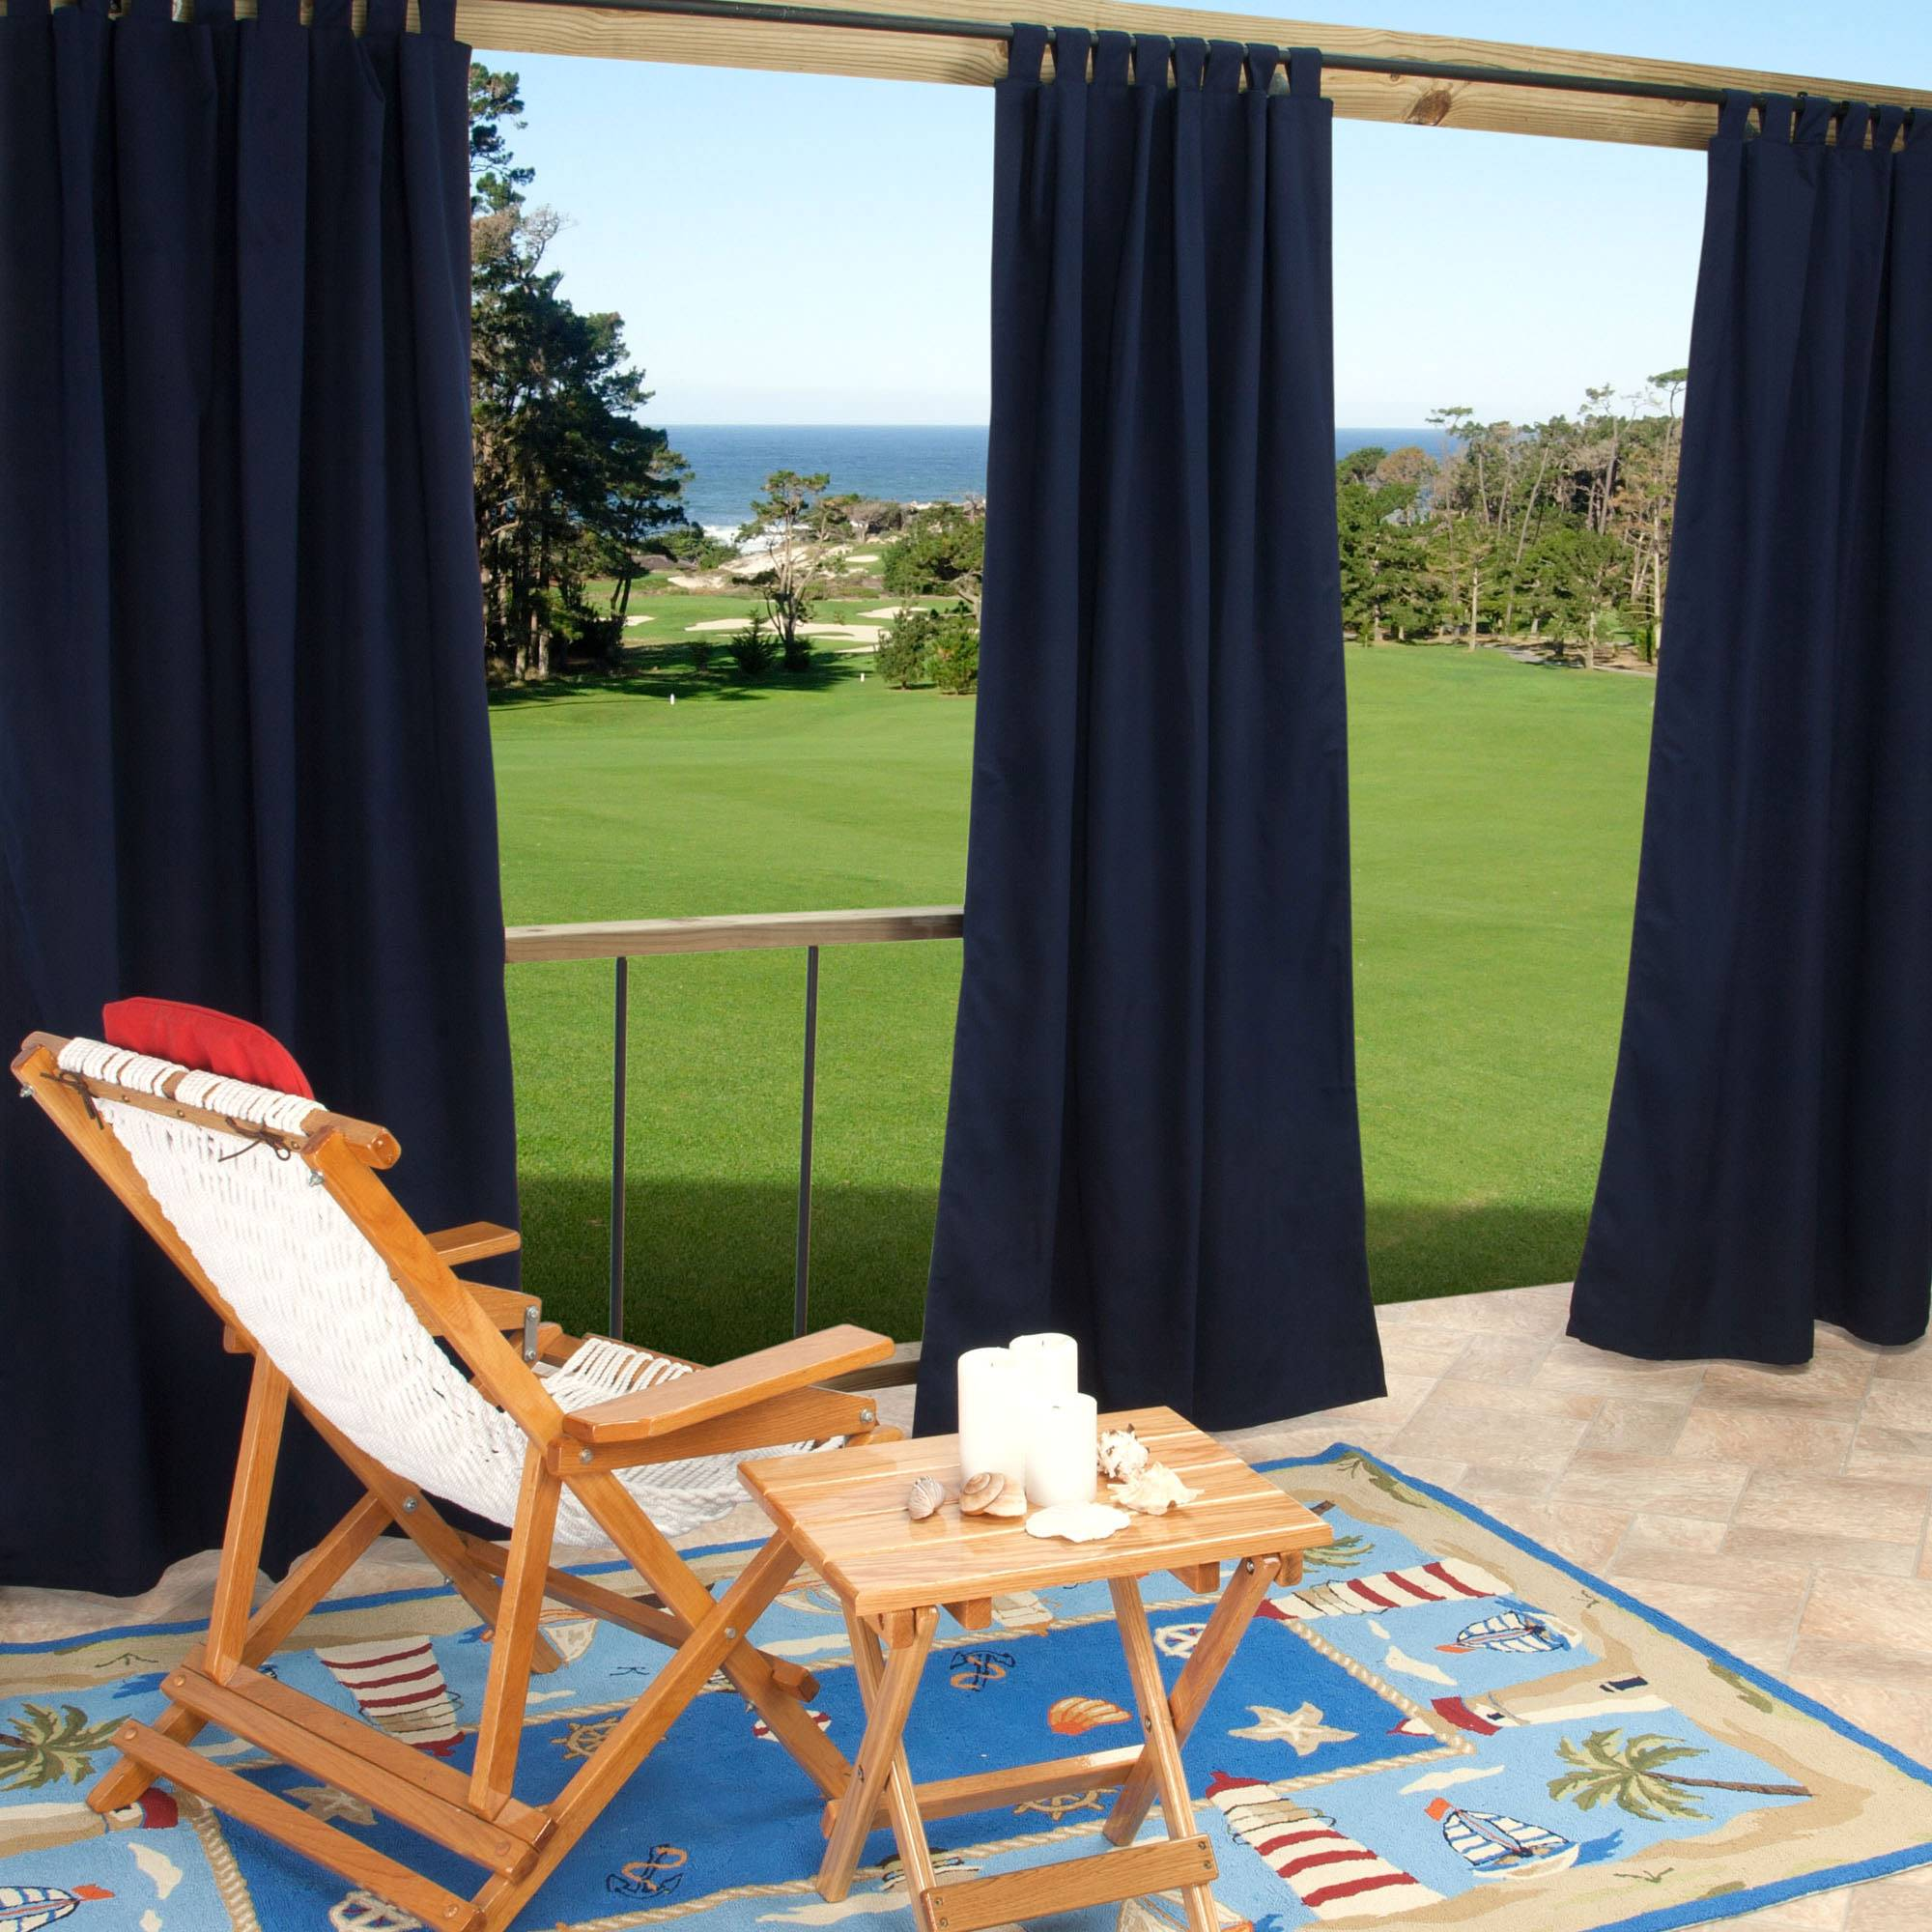 Pottery Barn Outdoor Pillows | Sunbrella Curtains | Sunbrella Cushions for Outdoor Furniture